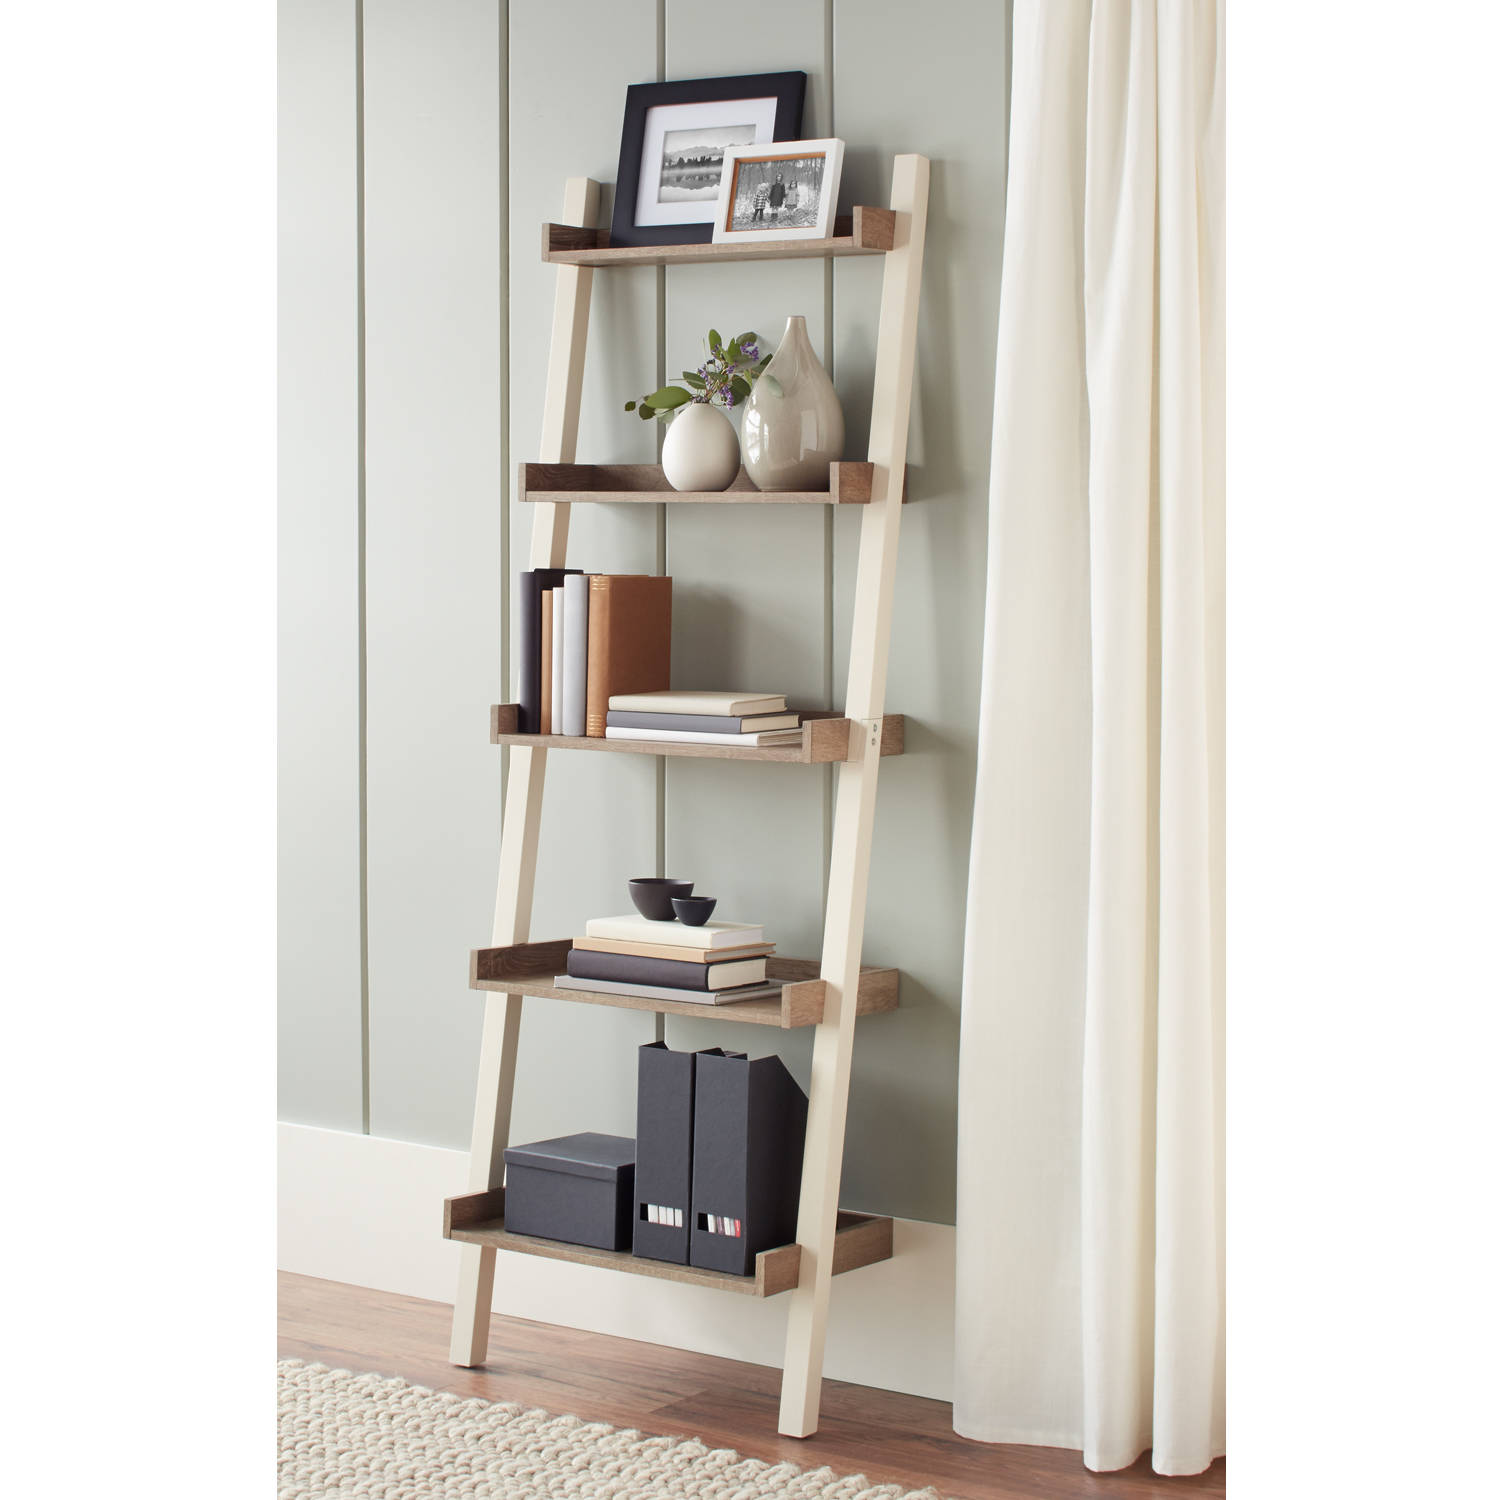 Better Homes and Gardens Bedford 5 Shelf Leaning Bookcase, Multiple Colors